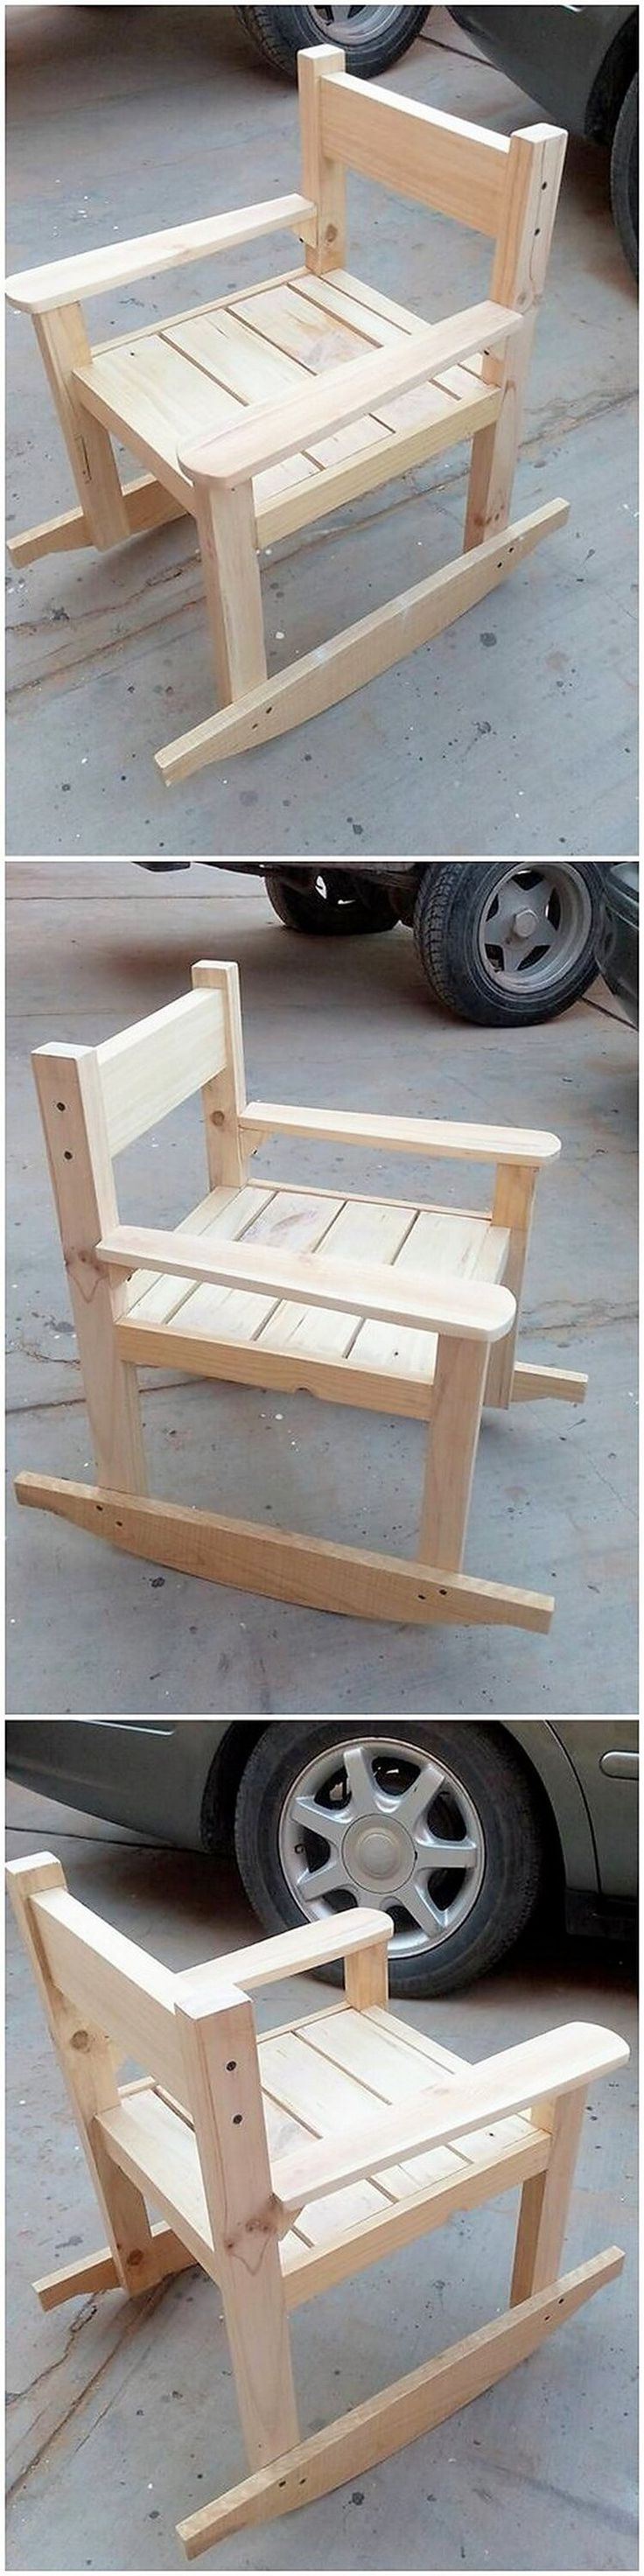 To arrange a comfortable area for their seating through this best idea of wood pallet rocking chair set. It do look stylish and has been carried out with much simple designing framework. As being small in size, you can make it place into any corner of your house.